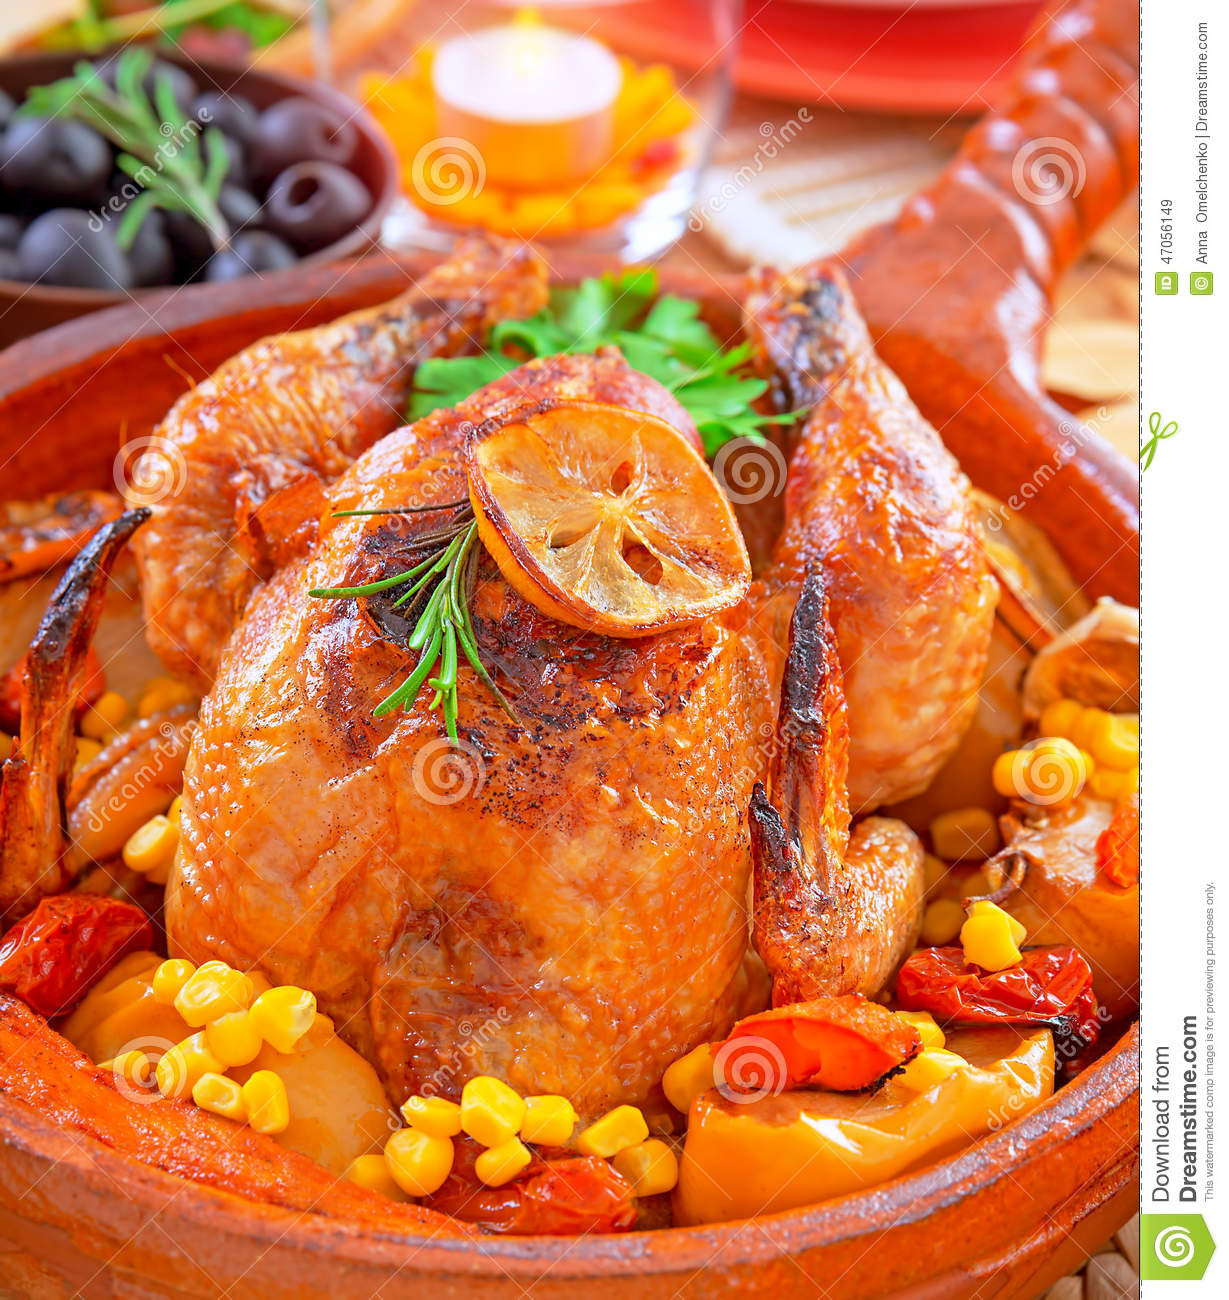 Typical Thanksgiving Dinner  Traditional Thanksgiving Dinner Stock Image